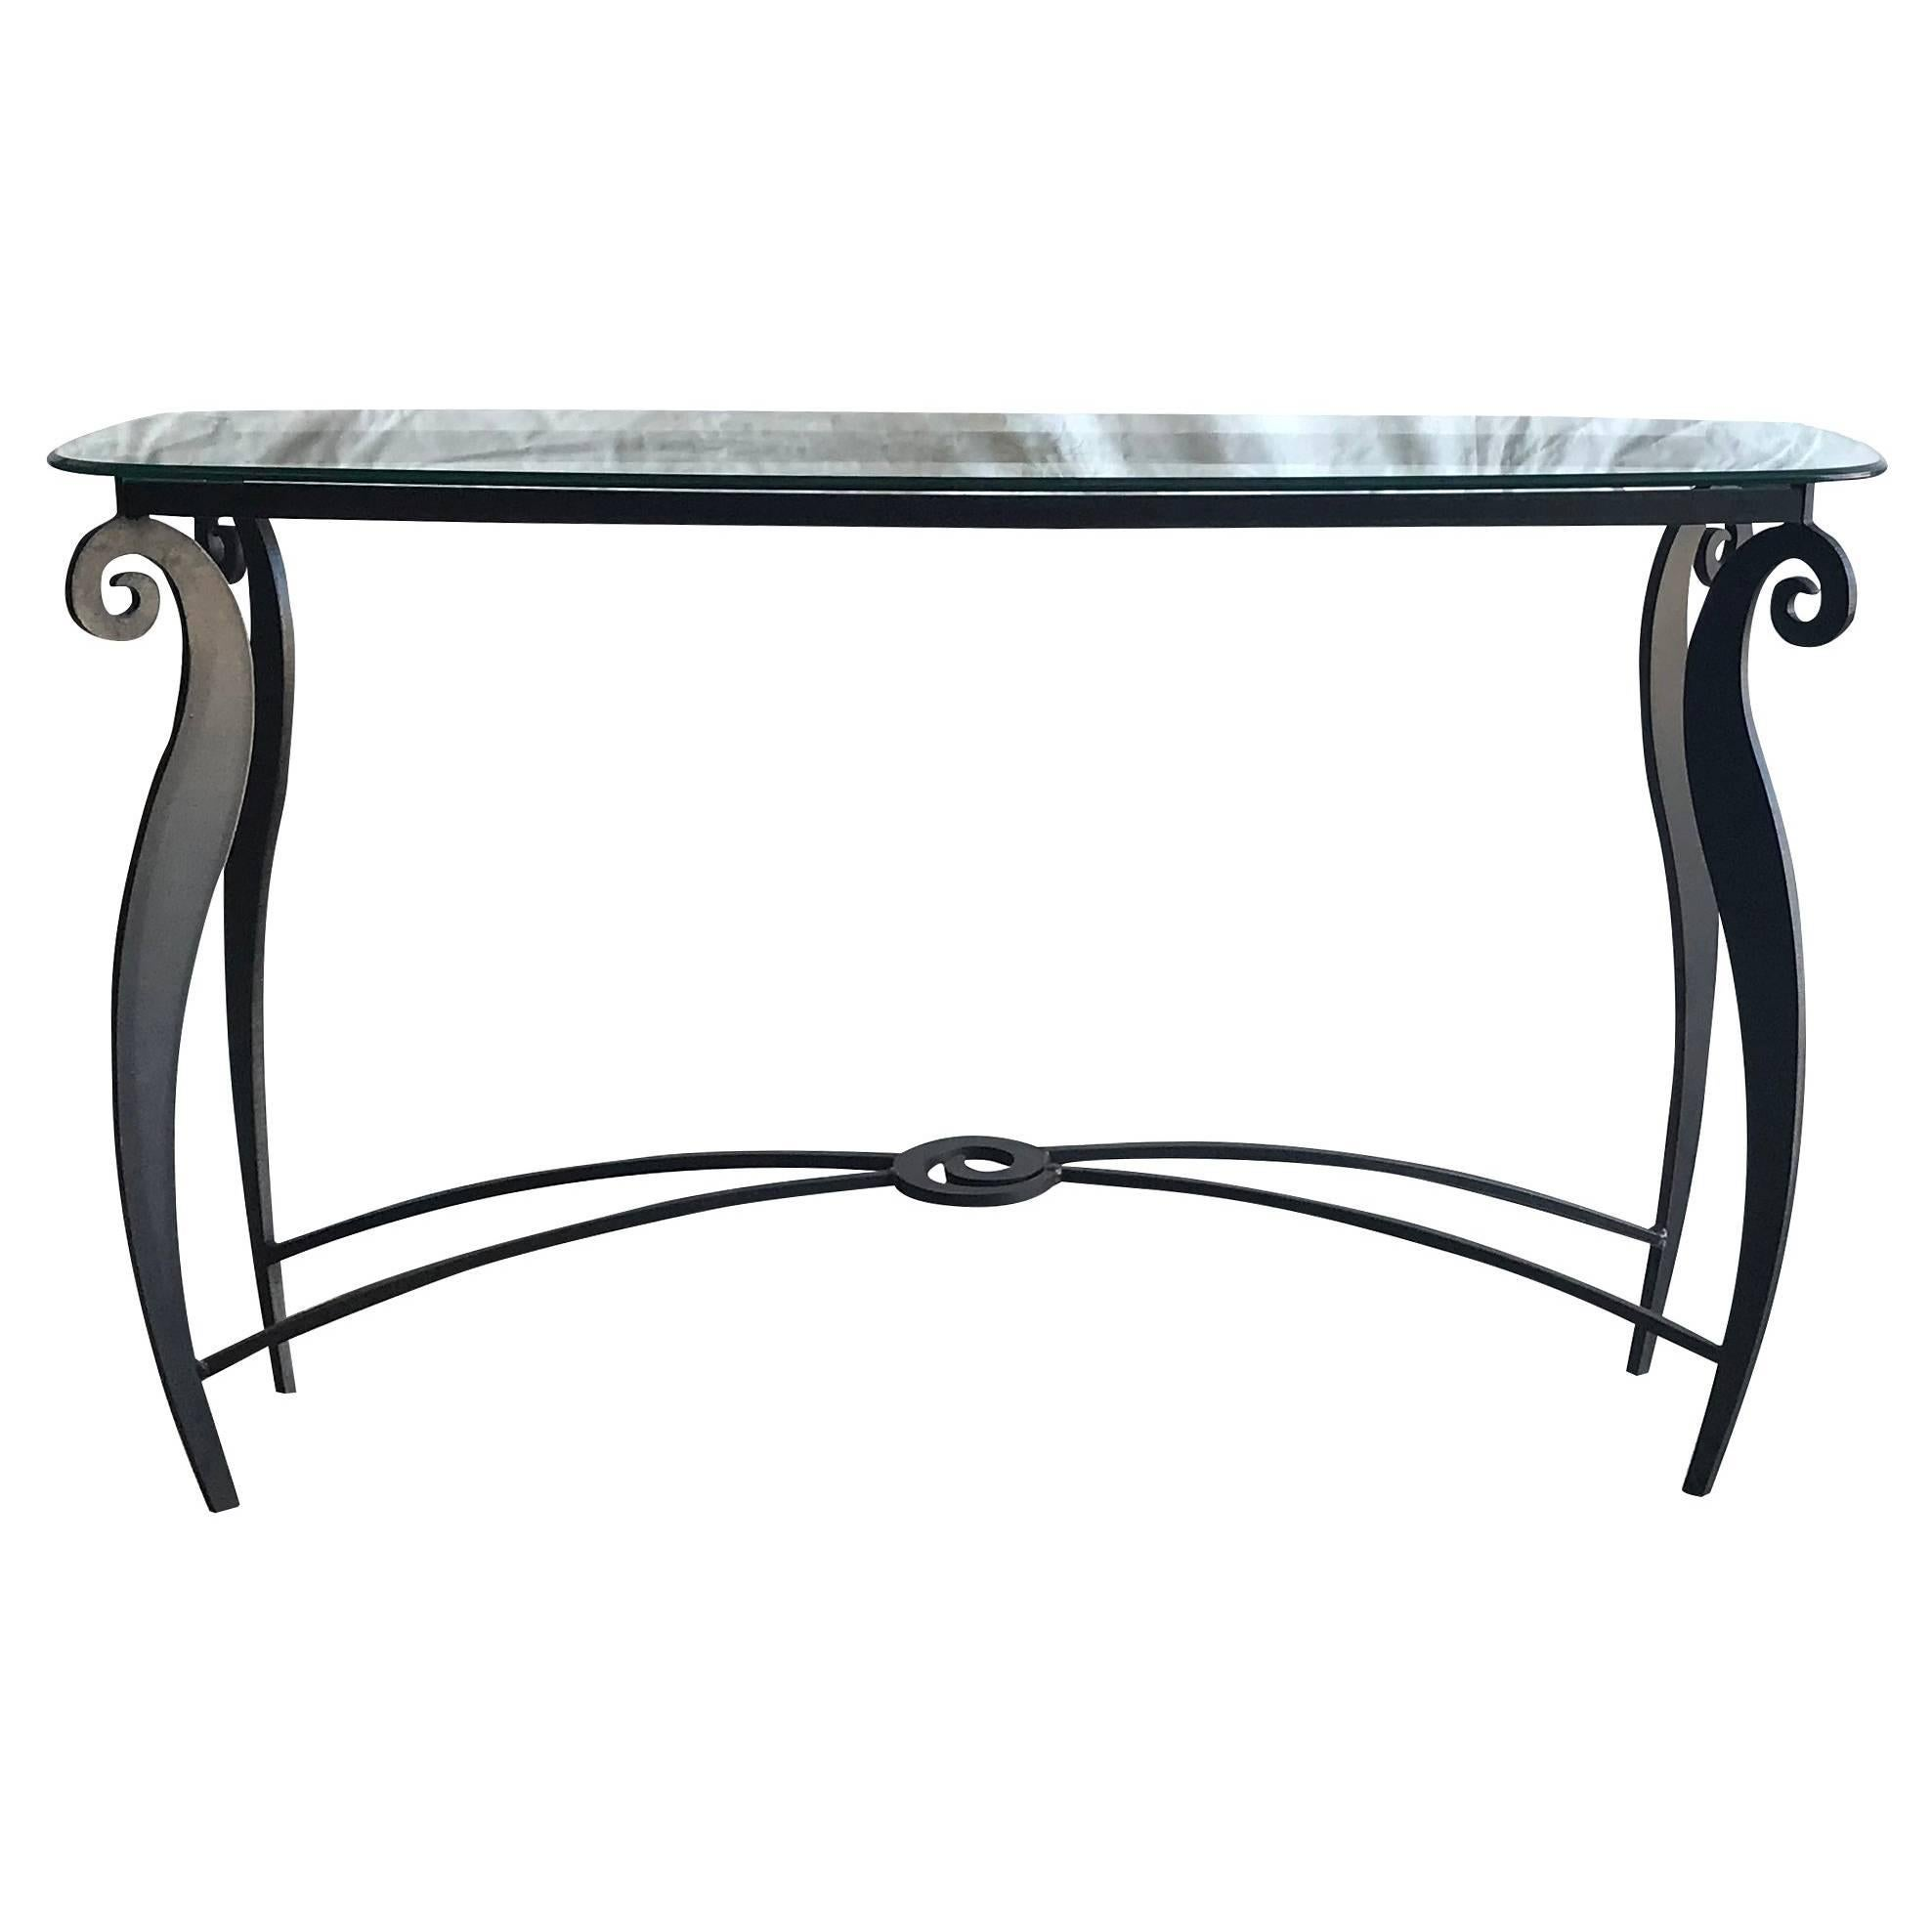 20th Century Pucci De Rosso Console Table From Italy